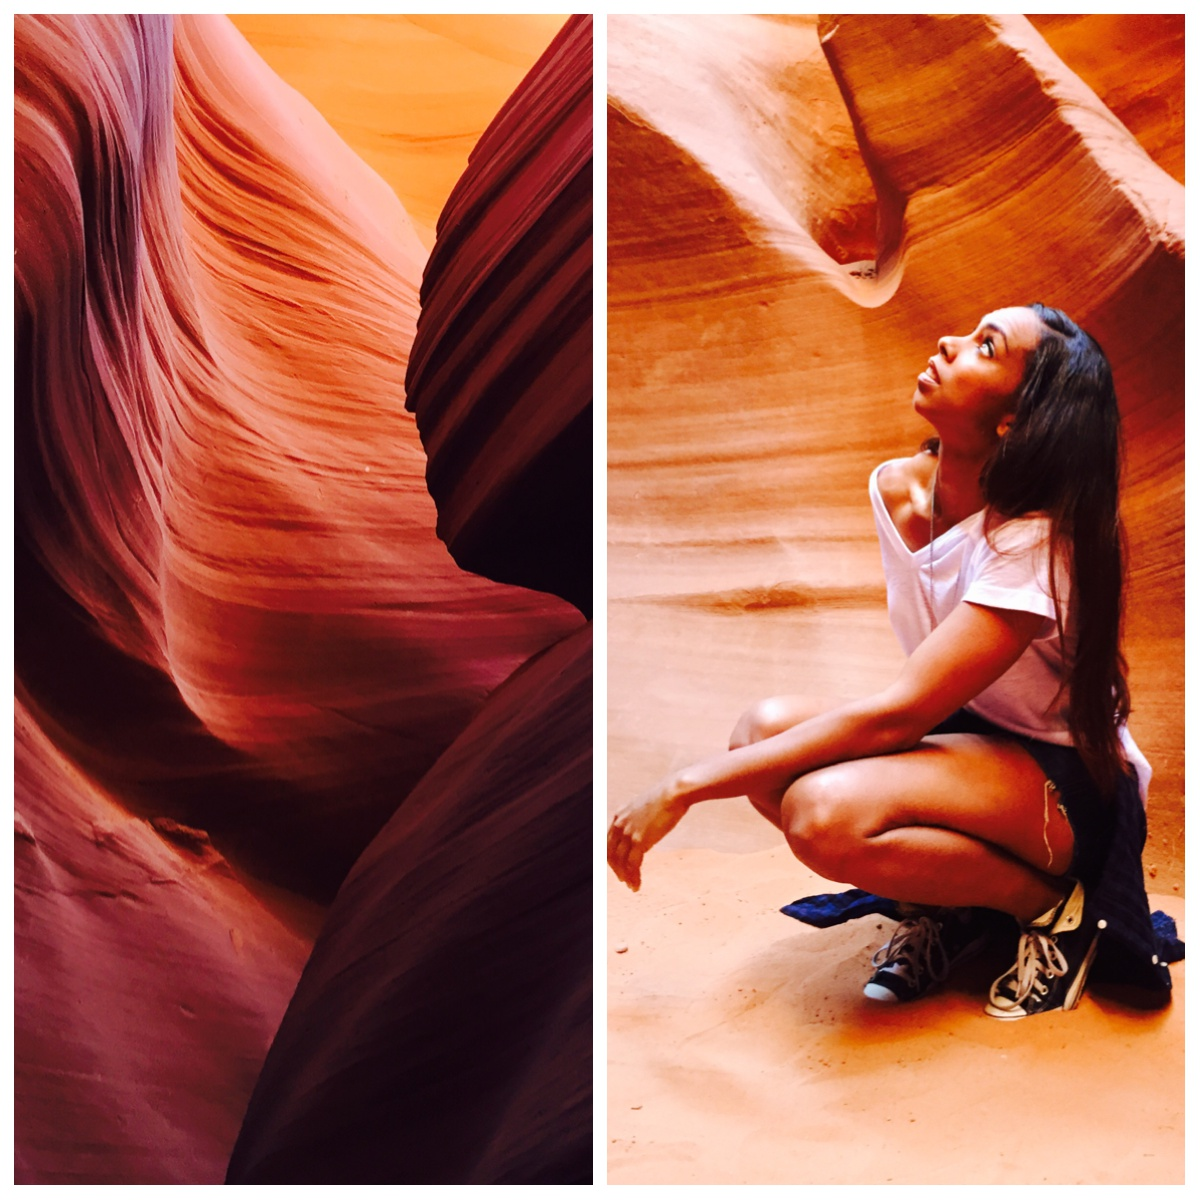 Should I go to lower antelope canyon?